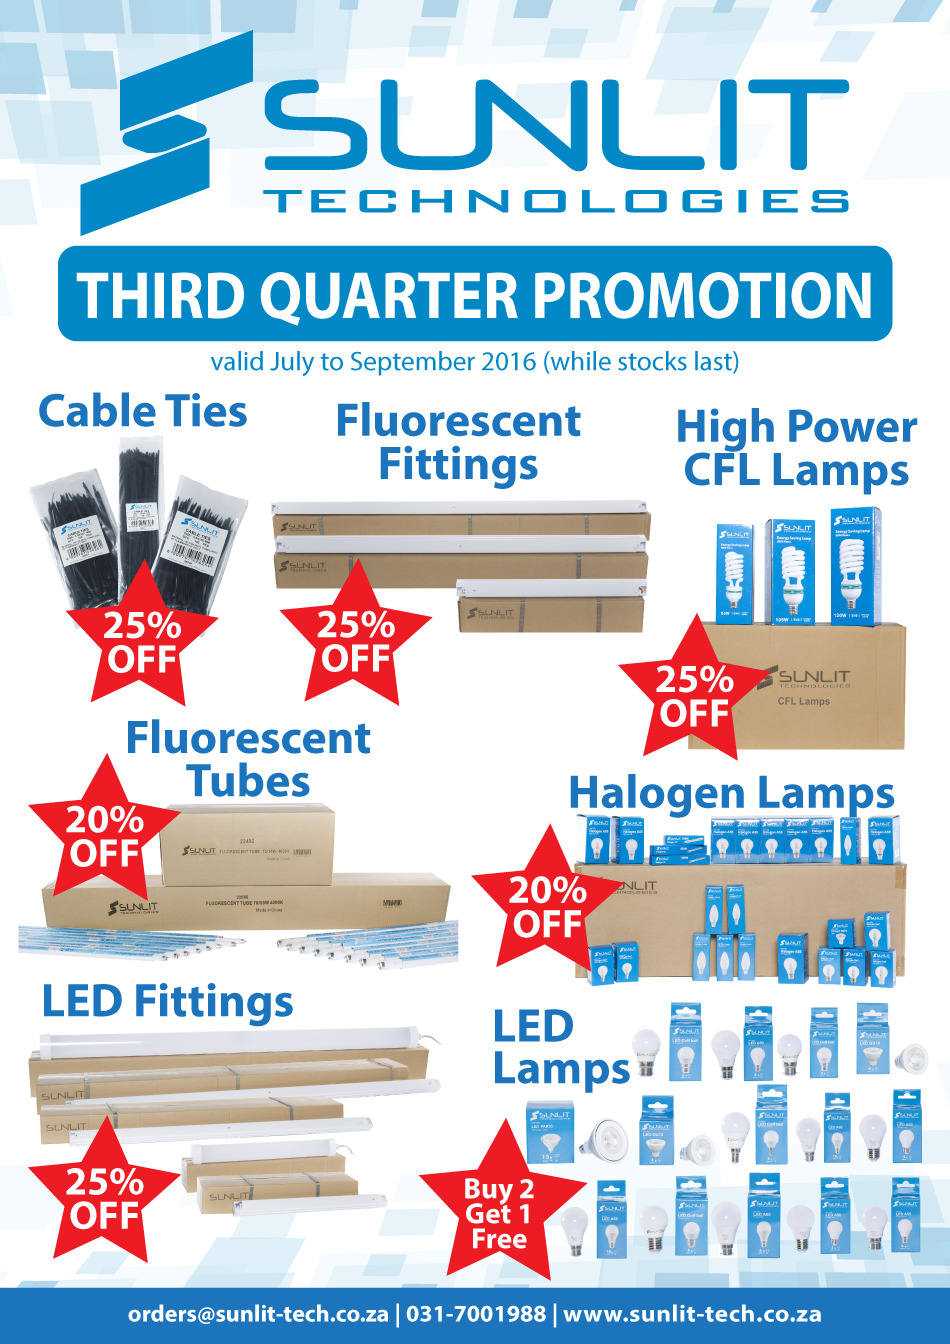 Sunlit-Technologies - third quarter promotion